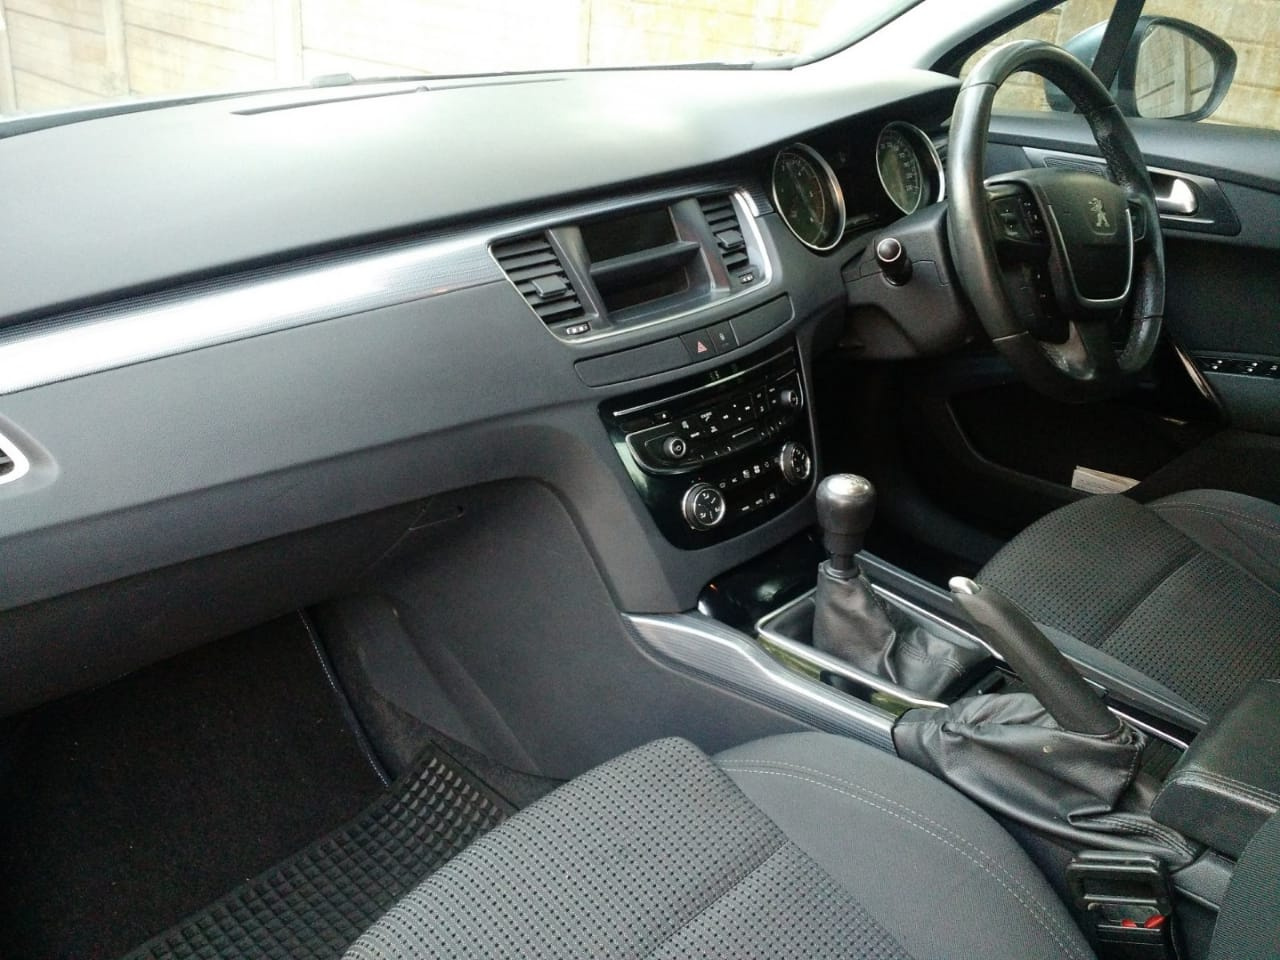 2011 Peugeot 508 2.0HDi Active